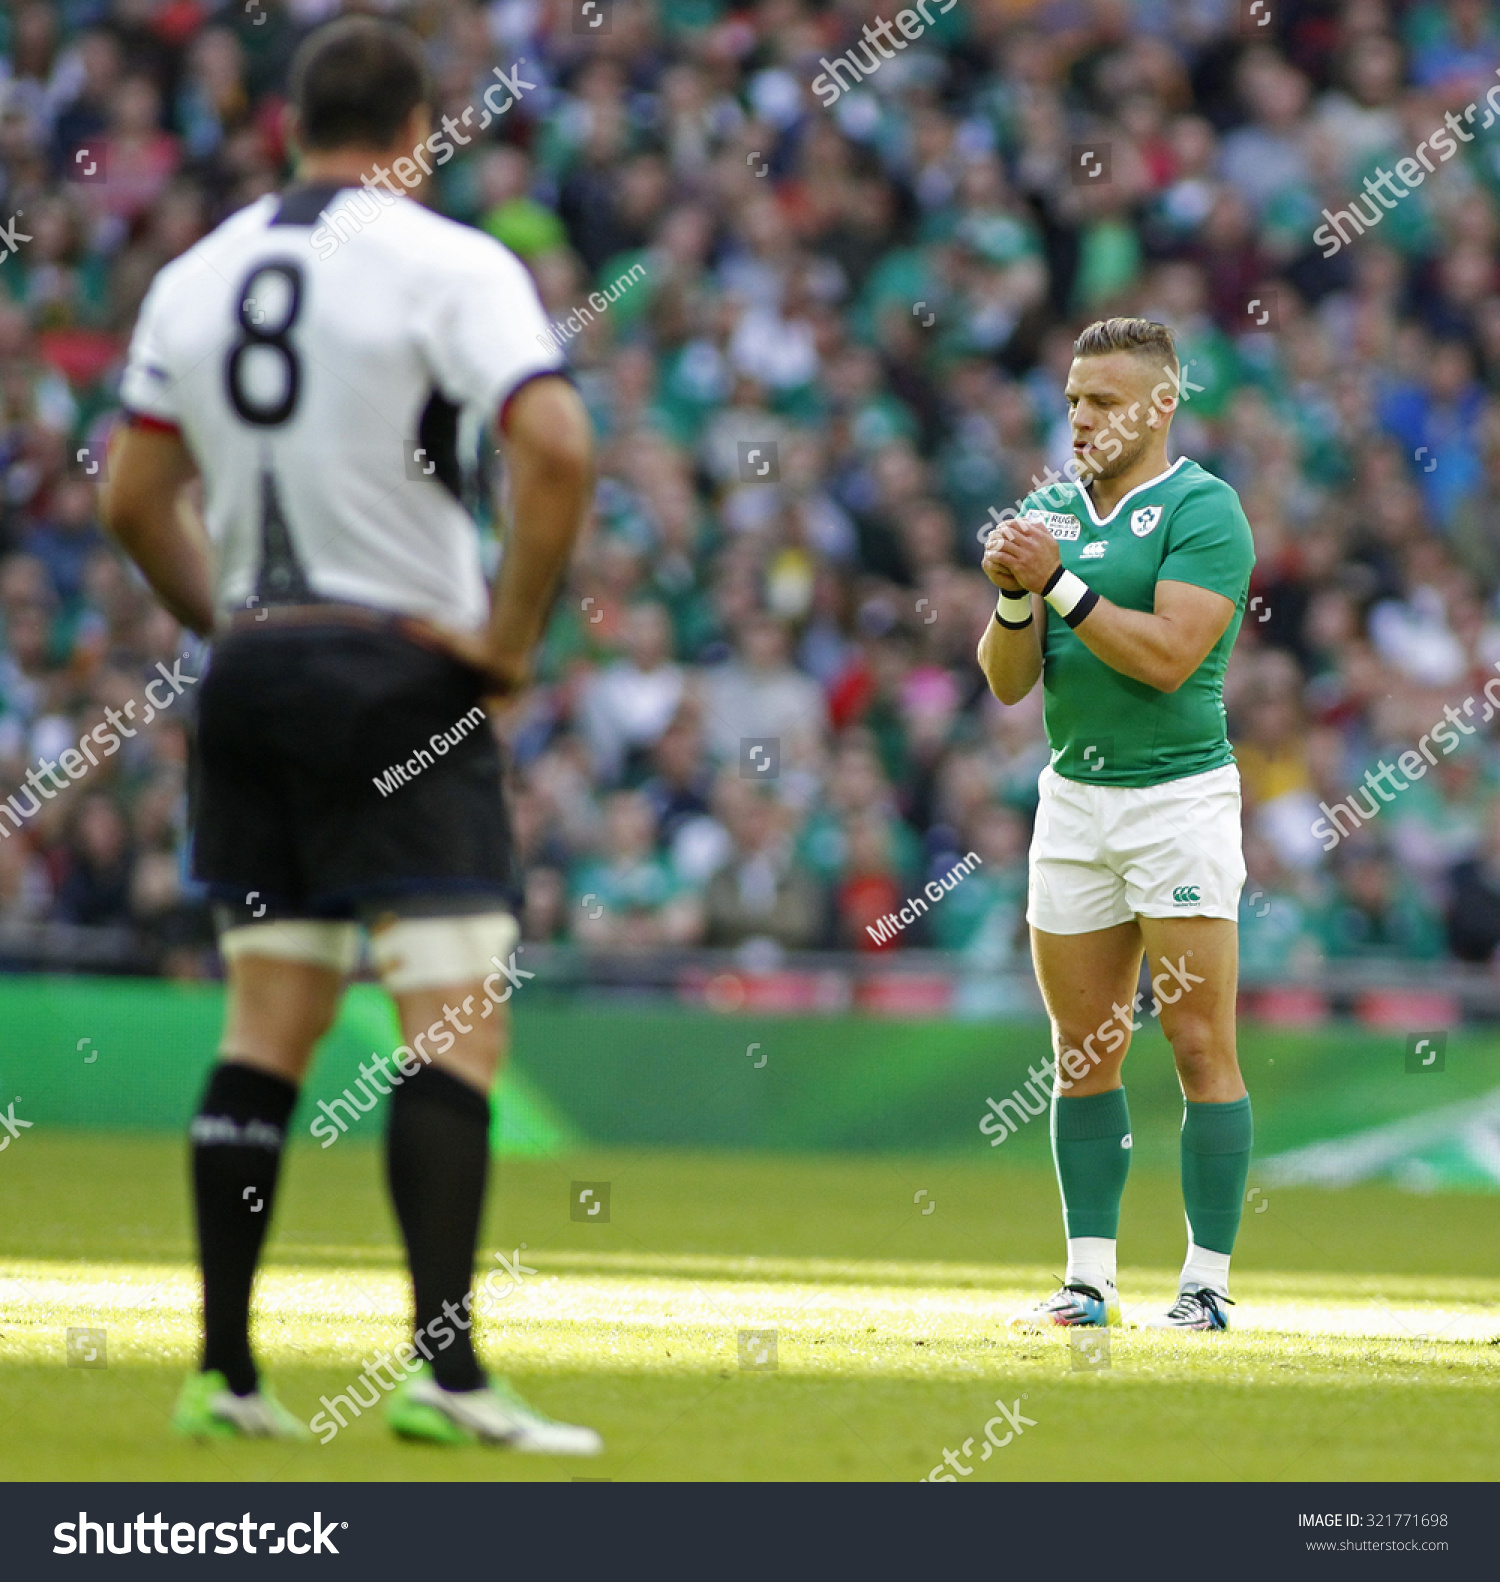 LONDON ENGLAND SEPTEMBER 27 2015 The 2015 Rugby World Cup Pool D match between Ireland and Romania at Wembley Stadium on September 27 2015 in London United Kingdom